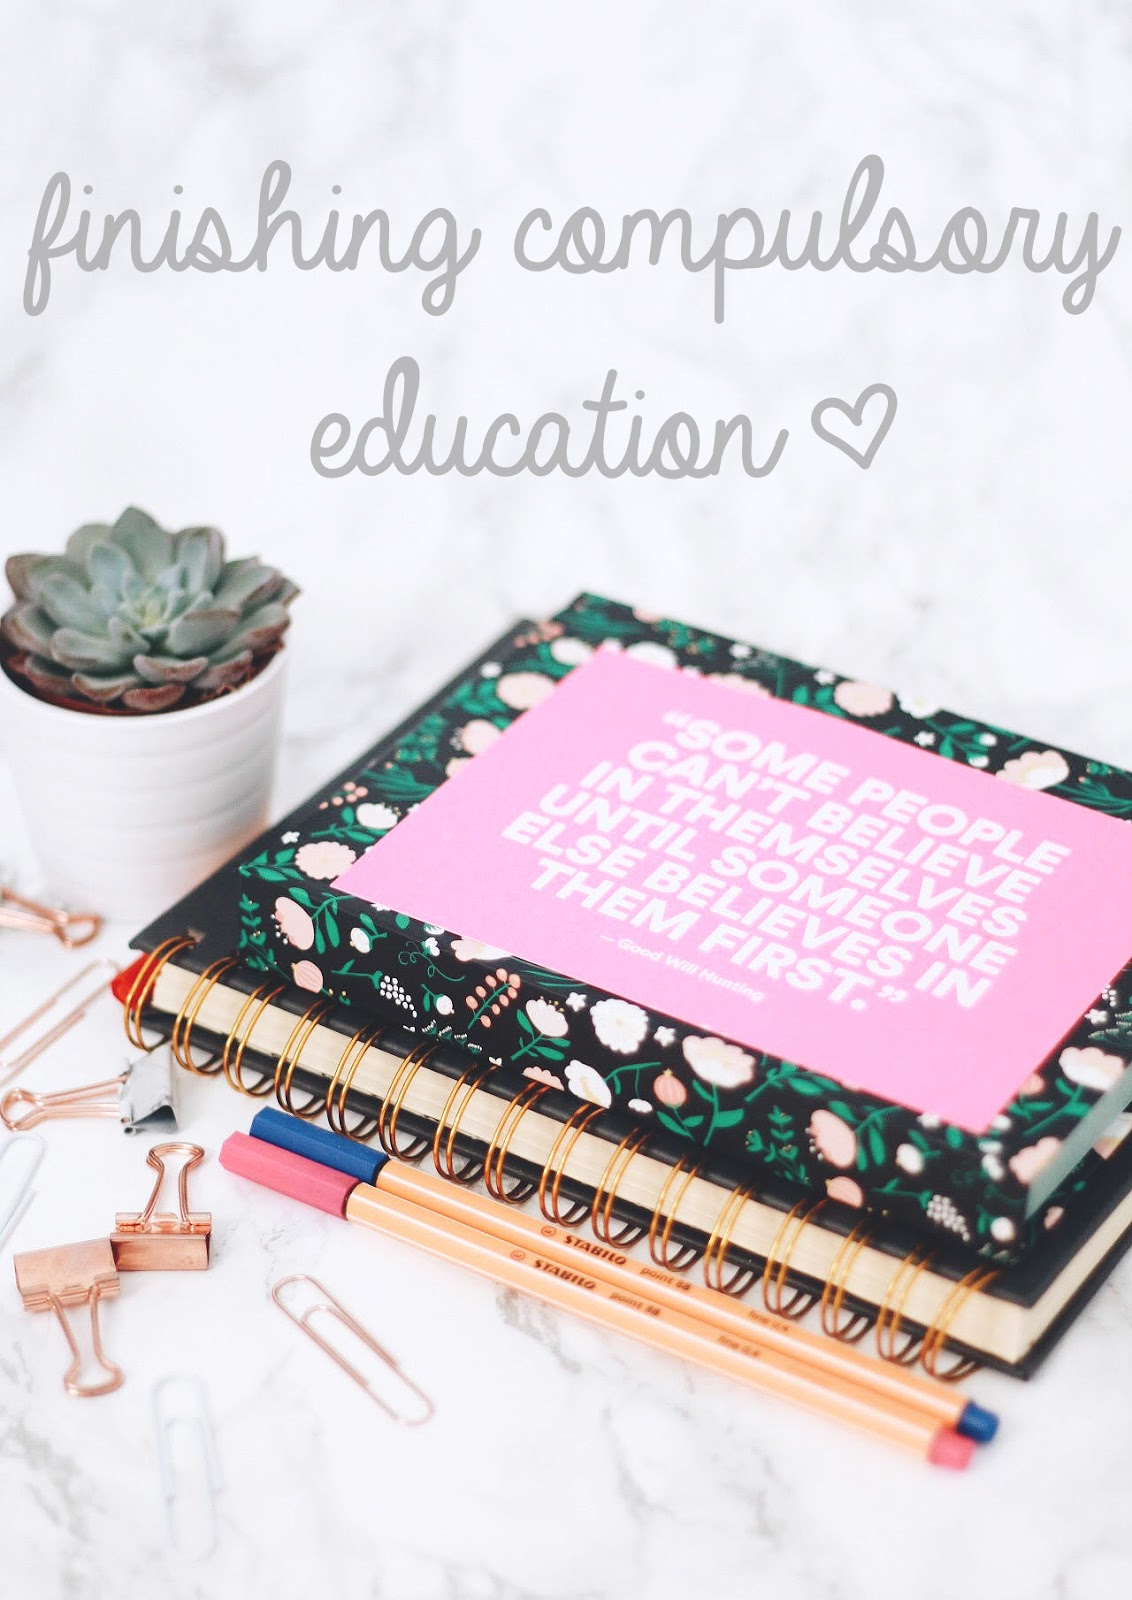 forever september, beauty blogger, lifestyle blogger, fashion blogger, happy, compulsory education, life update, stationery, quote, lifestyle